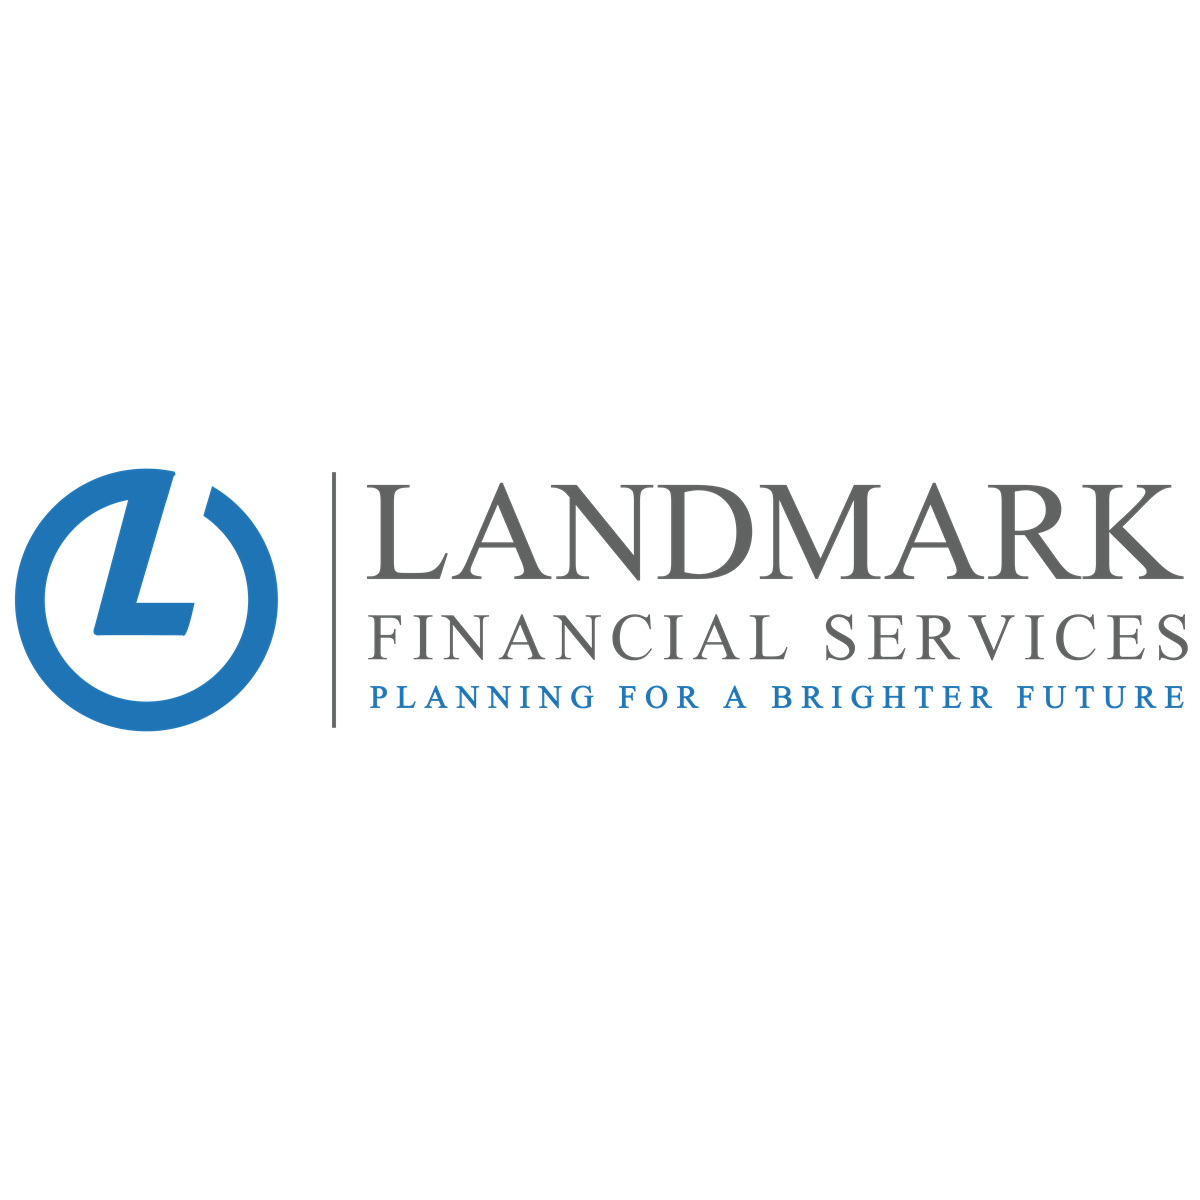 Landmark Financial Services